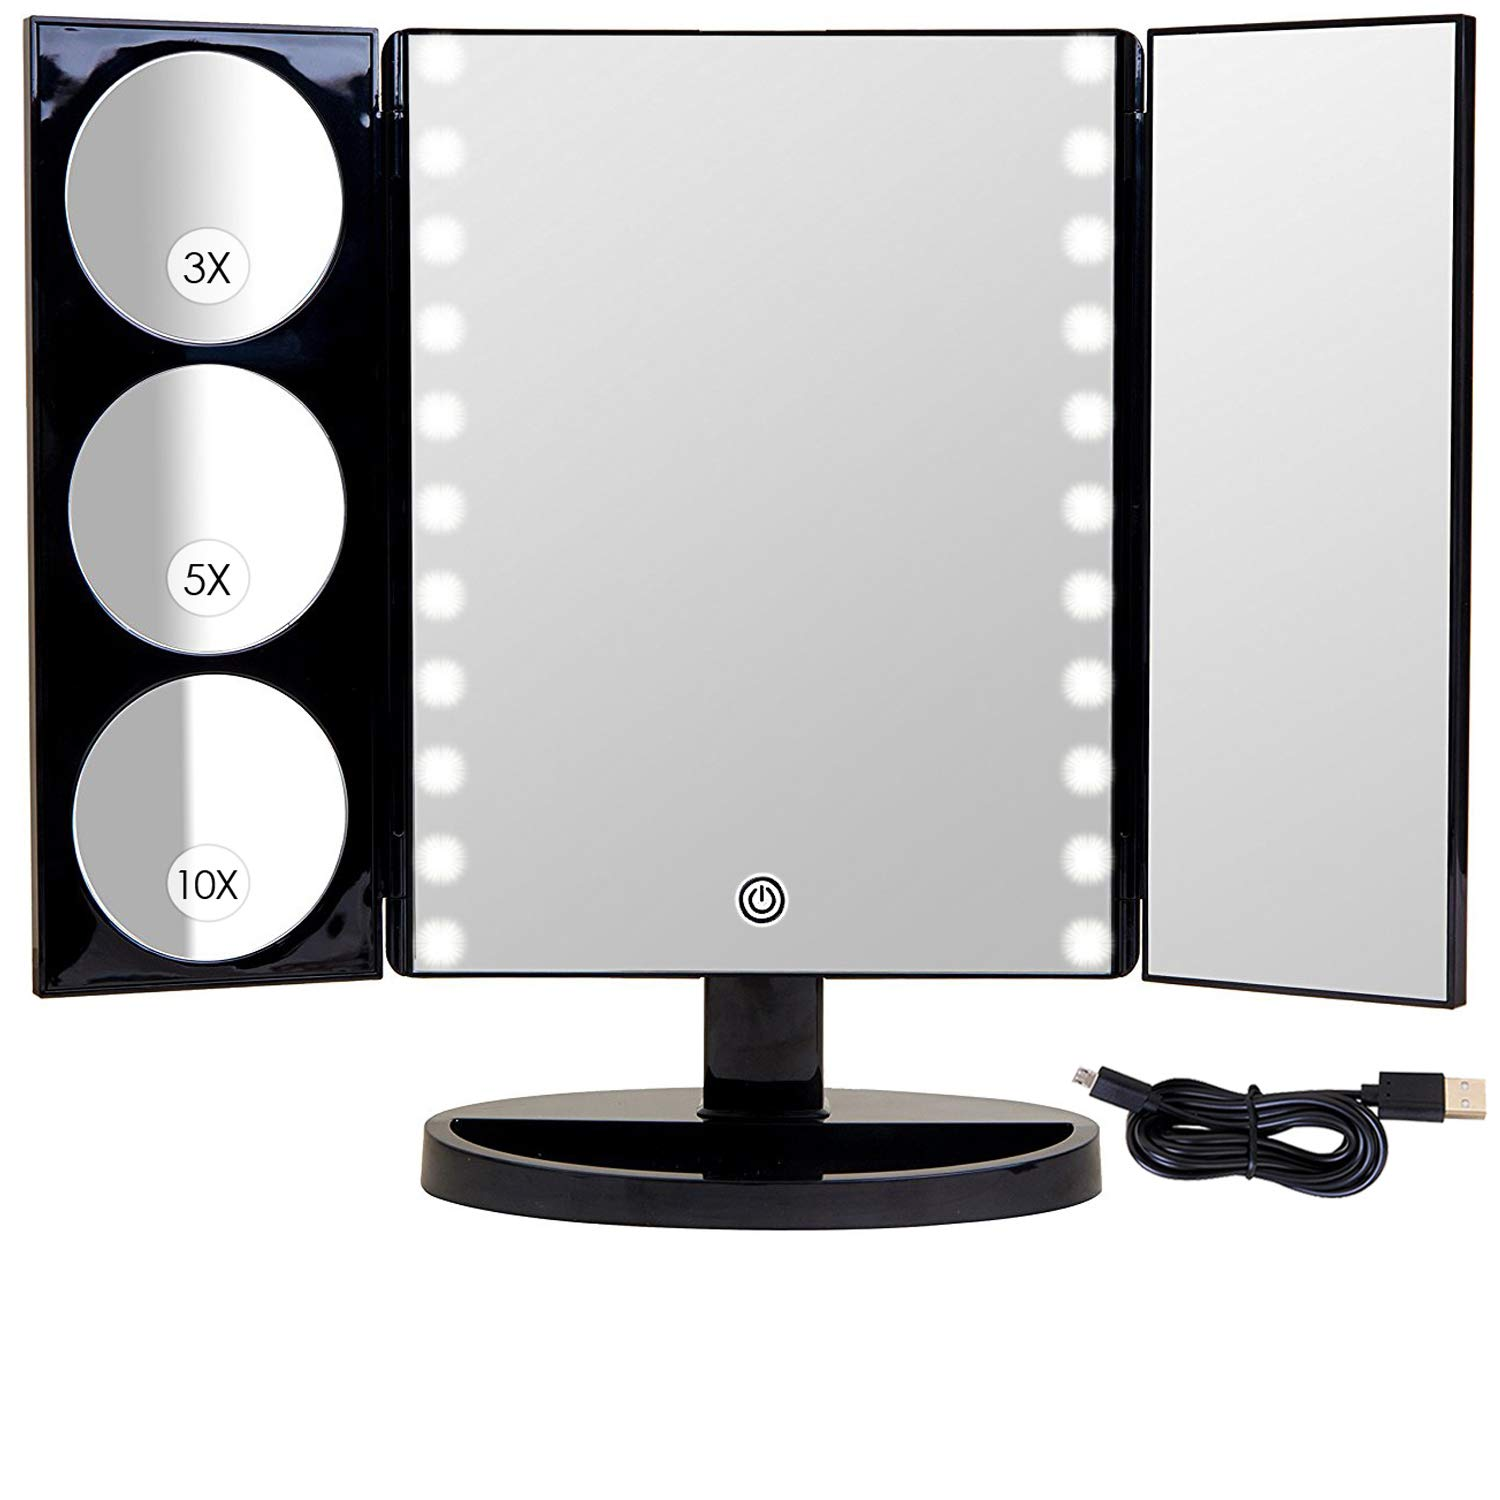 Mirrorvana X-Large LED Lighted Trifold Makeup Mirror - Battery and USB Powered - 1X, 3X, 5X & 10X Magnification by Mirrorvana